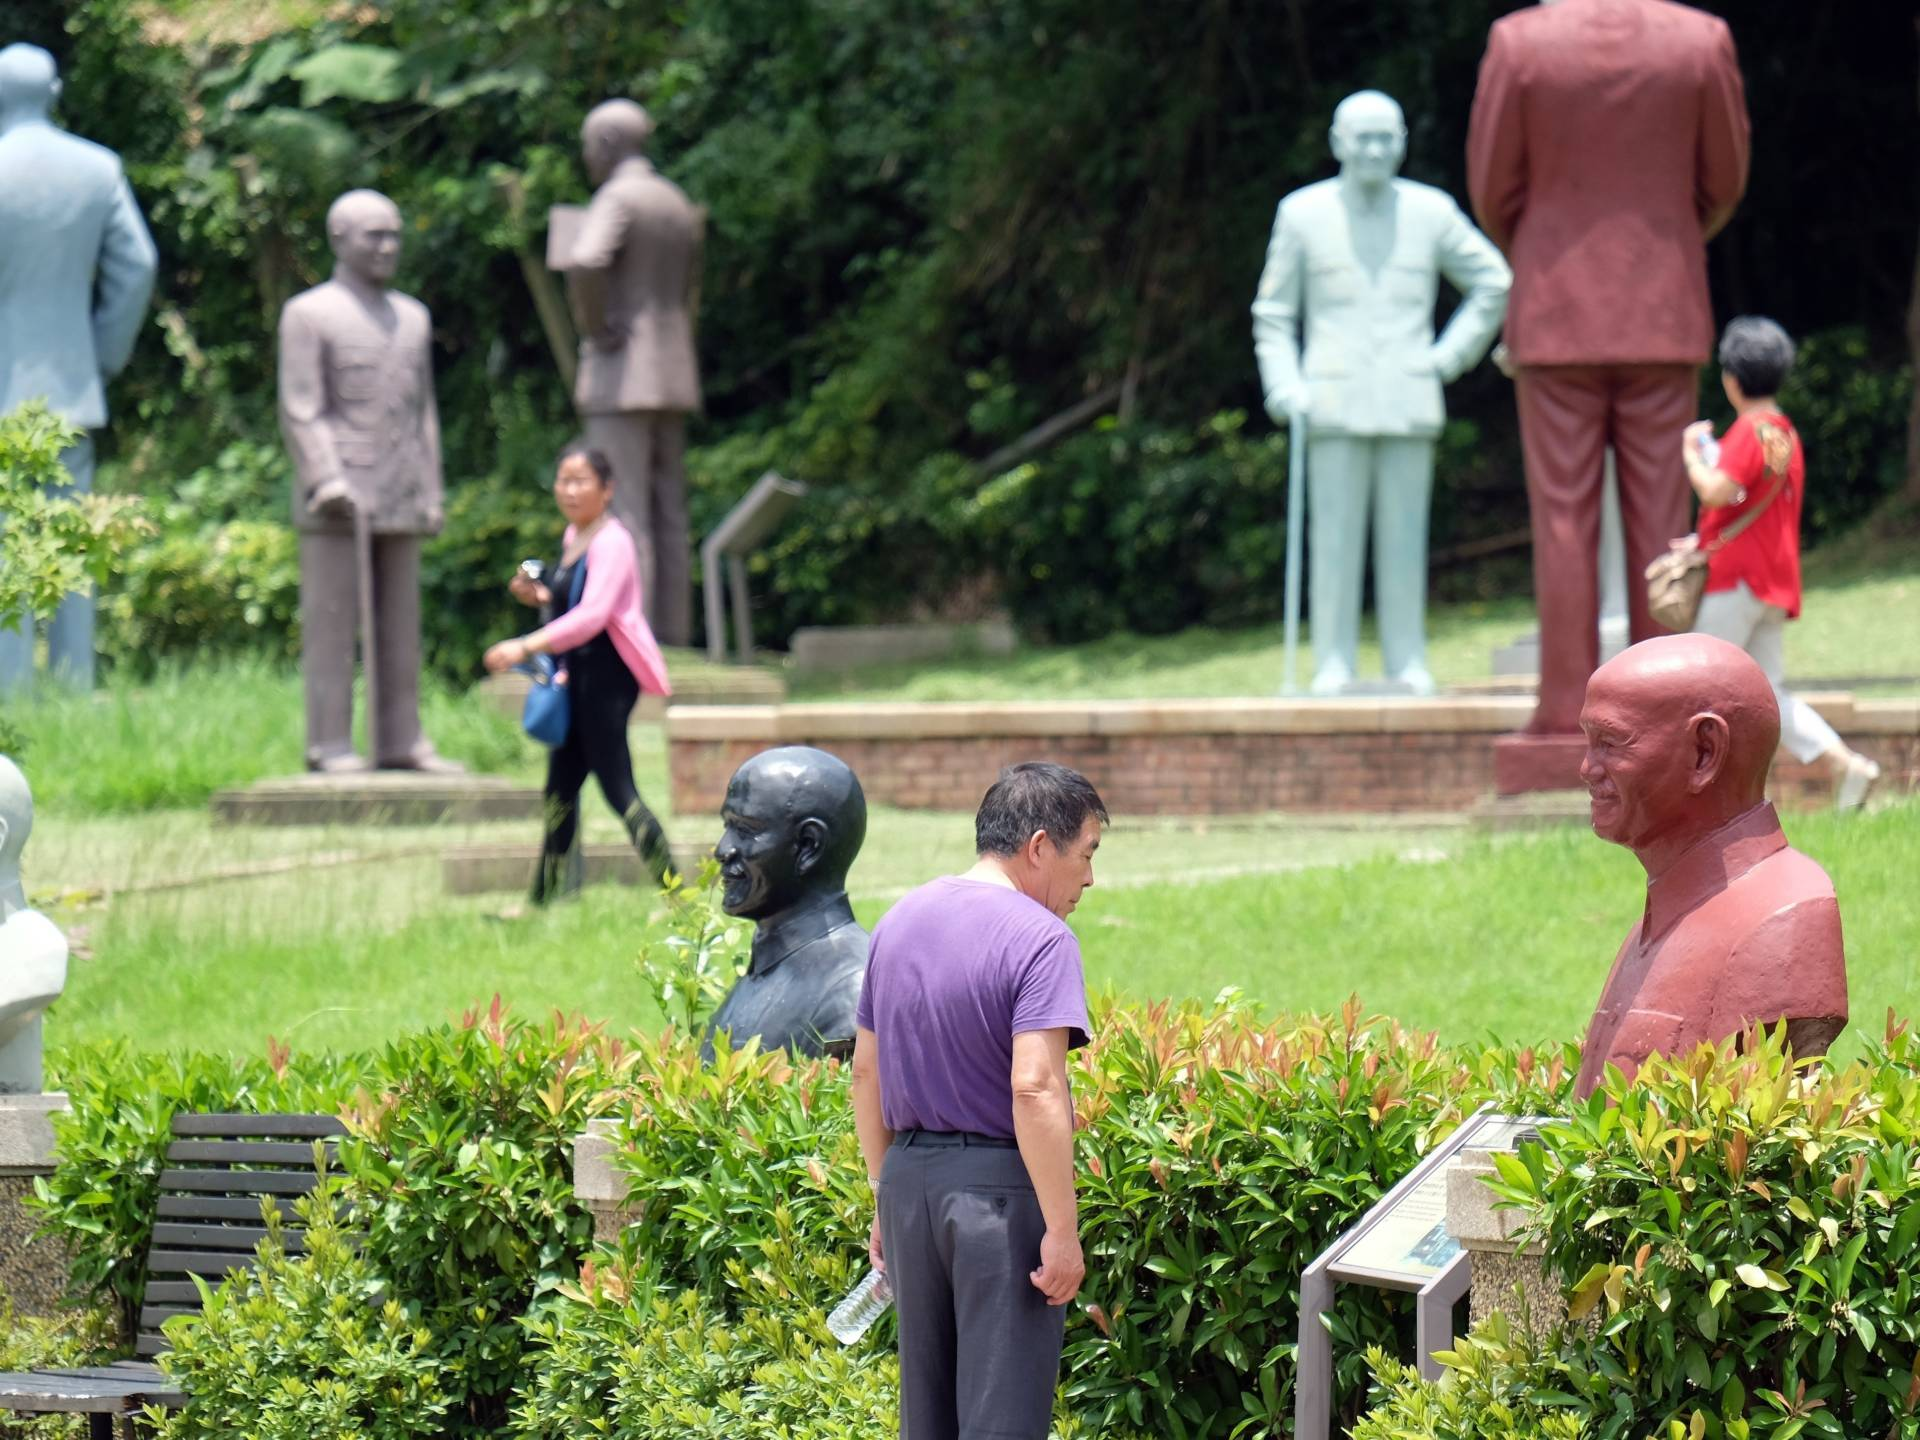 Chinese tourists visit the park in northern Taiwan that is home to more than 200 statues of late nationalist leader Chiang Kai-shek in 2015. Sam Yeh/AFP/Getty Images